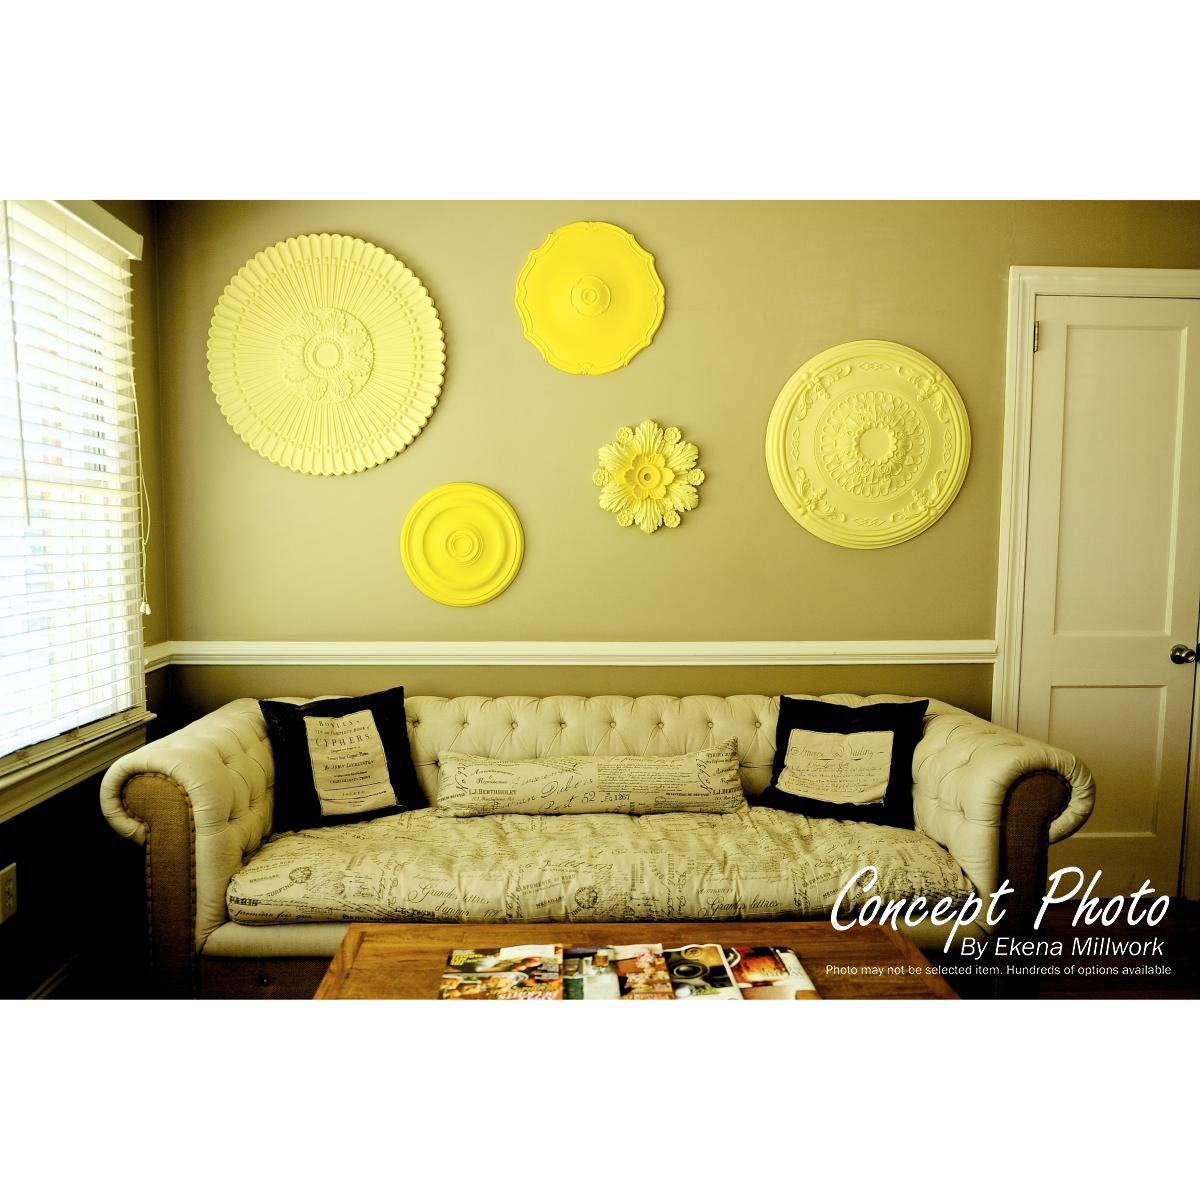 Two Piece Fits Canopies up to 1 Factory Primed White Two Piece Fits Canopies up to 1 Ekena Millwork CM35X22AN2-01000 35 7//8 W x 22 1//2 H ID x 4 3//8 P Antonio Ceiling Medallion